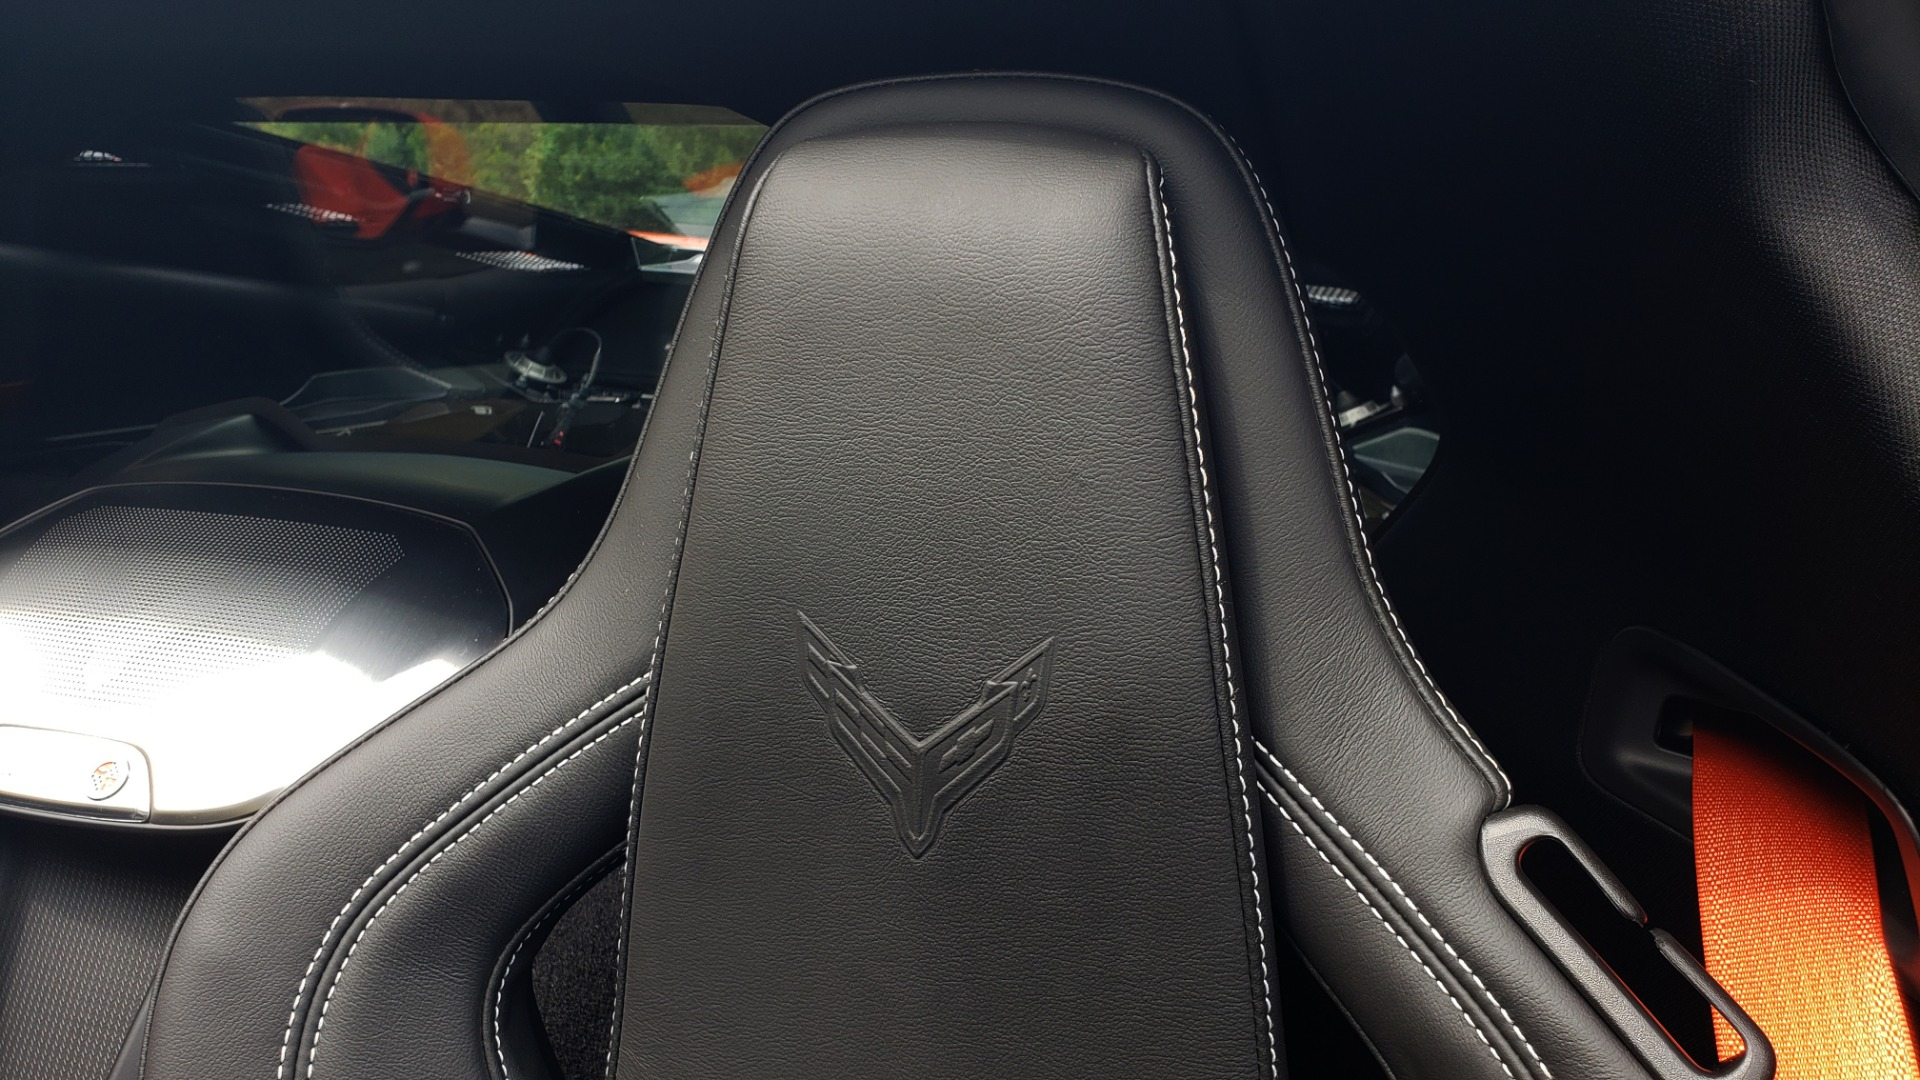 Used 2020 Chevrolet CORVETTE C8 STINGRAY 2LT / 6.2L V8 / 8-SPD AUTO / NAV / BOSE / REARVIEW / DATA RECOR for sale Sold at Formula Imports in Charlotte NC 28227 82